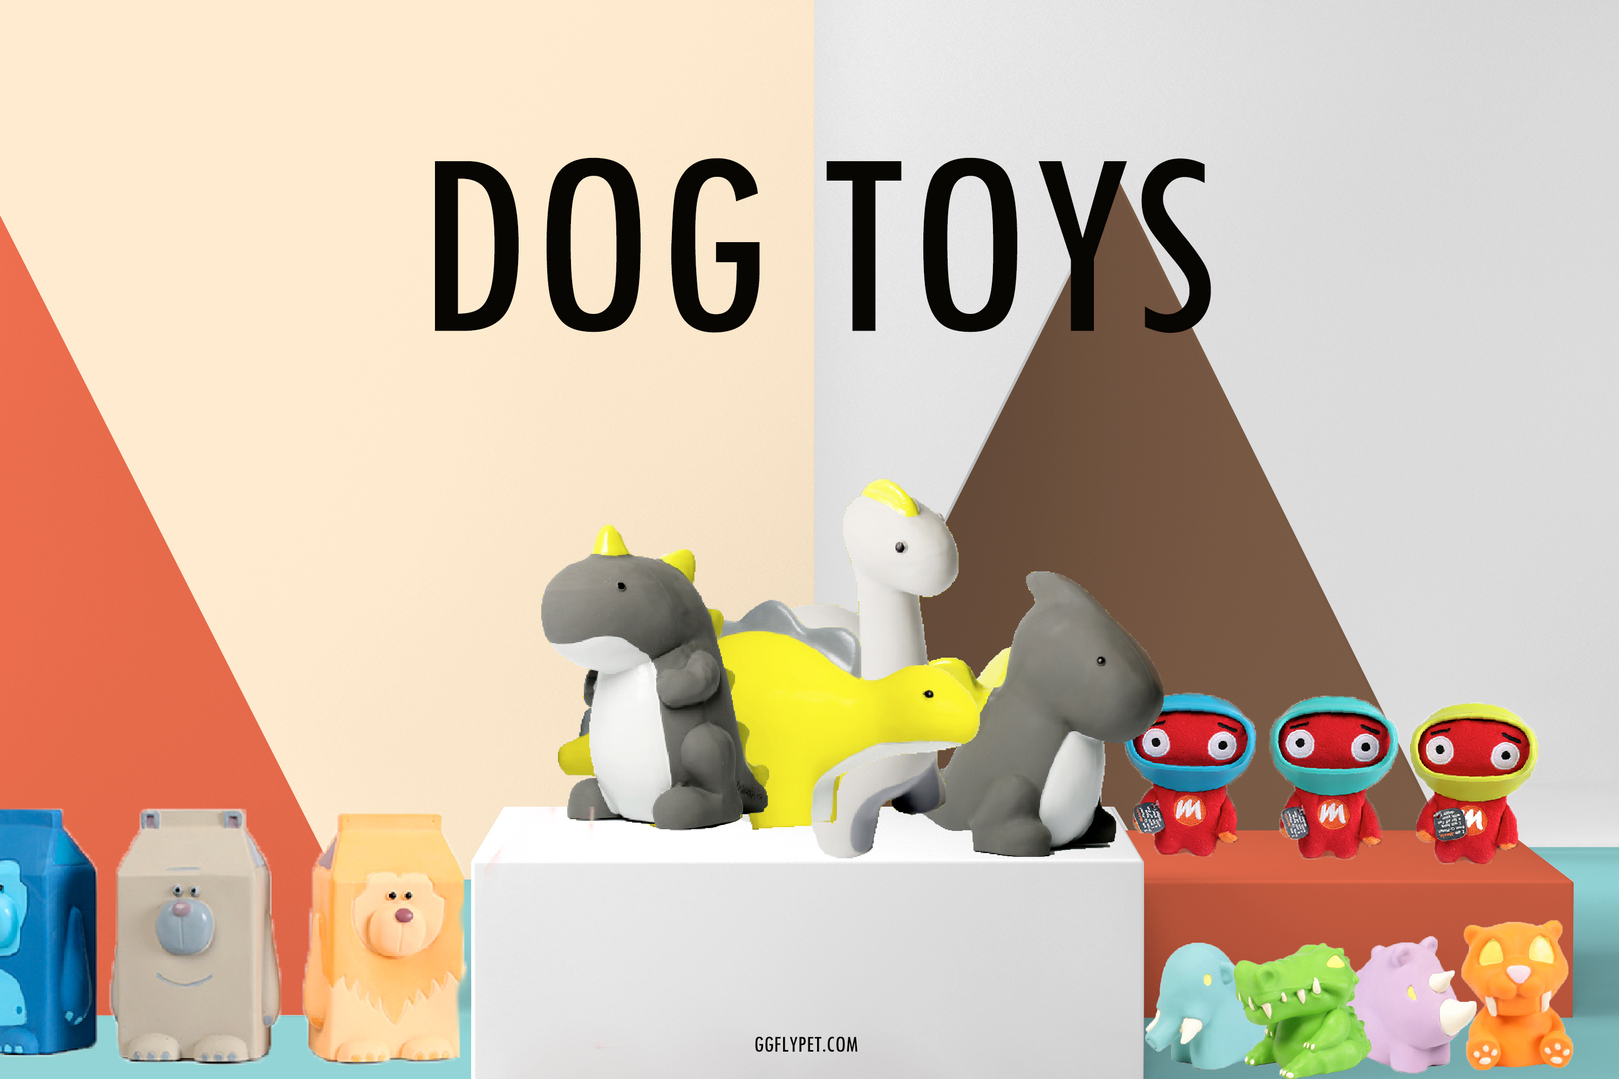 dOG tOYS.png